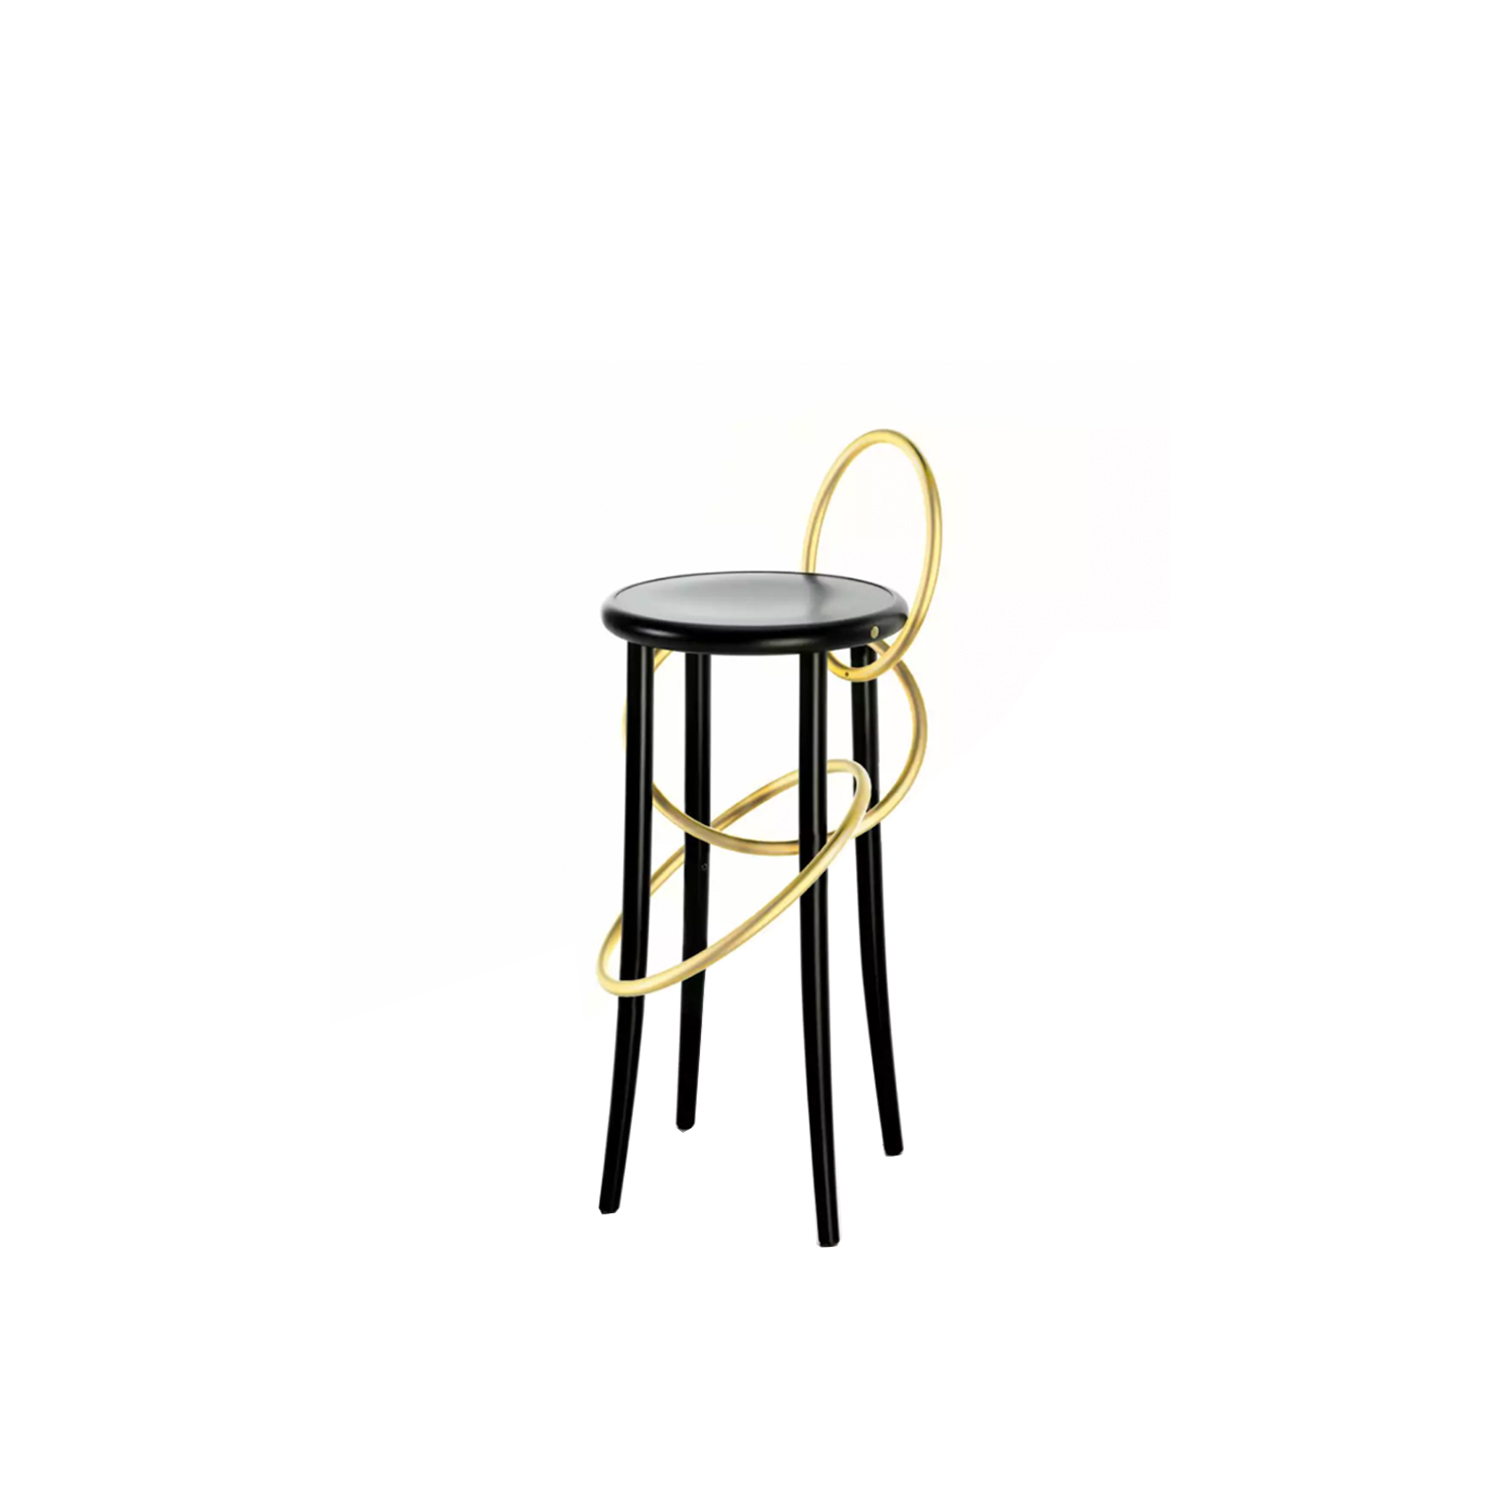 Cirque Brass Rings Stool - The light and playful circus theme is at the core of the Cirque family of stools designed by Martino Gamper for Wiener GTV Design. The bent element, which is the brand's signature trait, is surprisingly and unexpectedly inserted in the base of the stool, forming the outline of the seat in the form of a chain comprising two or three wooden rings that loop around the full length of the stool legs. This striking styling effect blends in seamlessly with the functionality of the seat, which is available in two heights: a tall, sleek stool with or without backrest, Cirque L and Cirque M, and the stable and well-proportioned low stool, Cirque S. Also available in an original version with rings in a brass finish. | Matter of Stuff